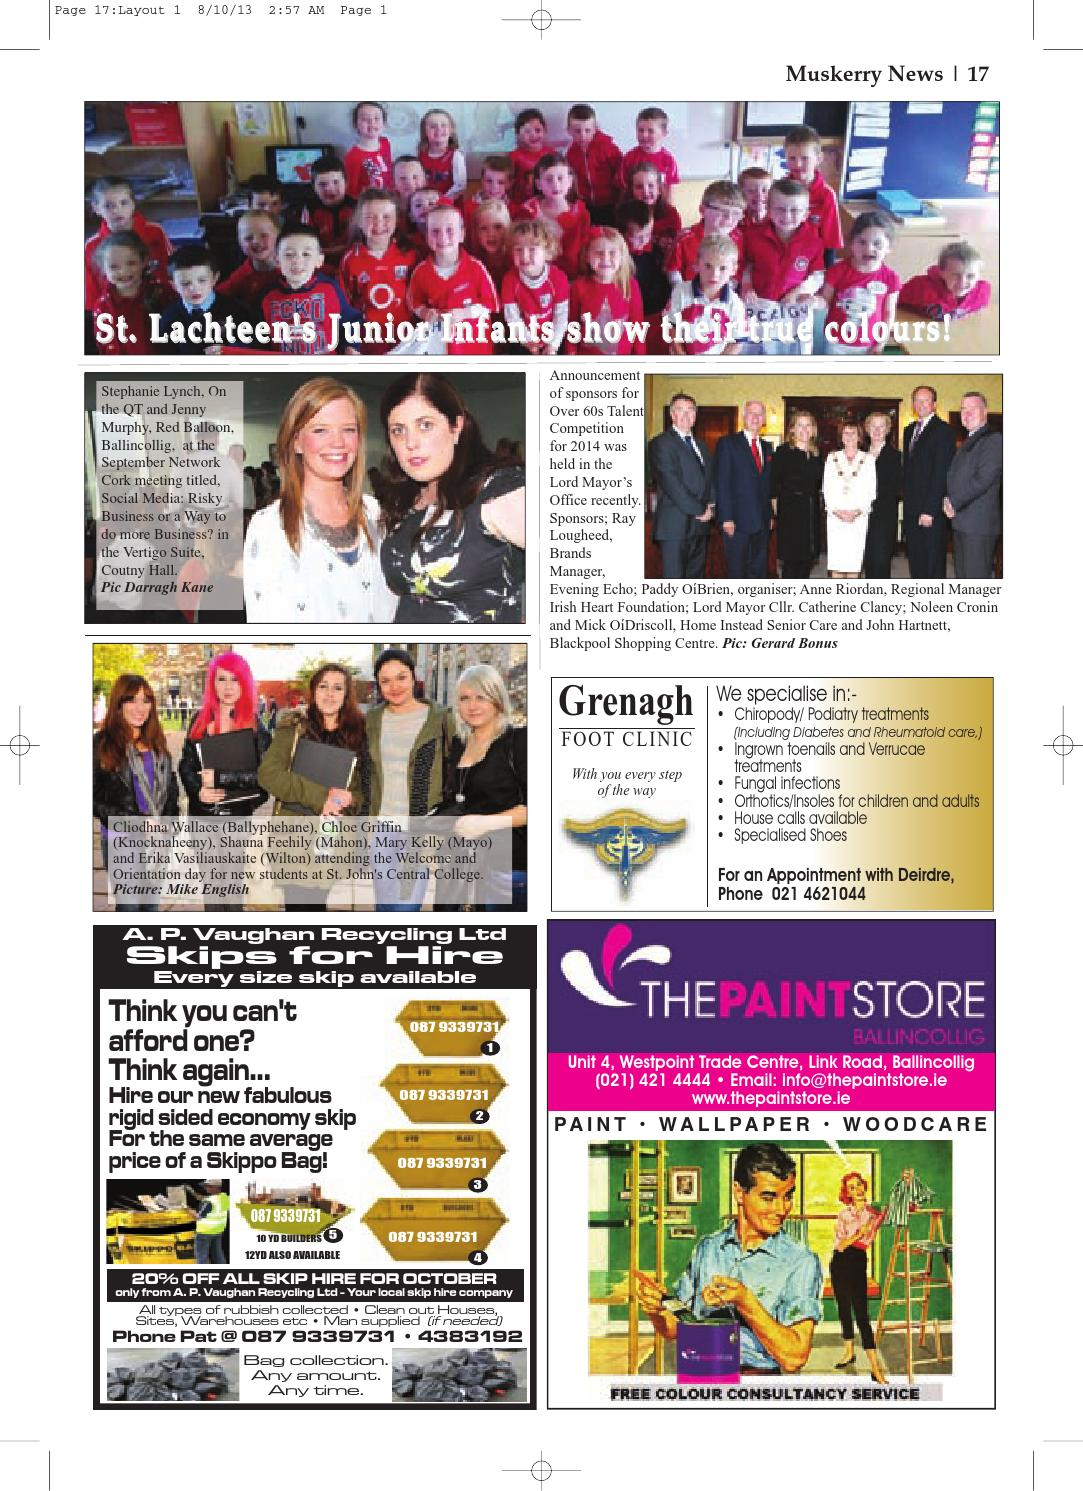 Muskerry news october 2013 by Muskerry News - issuu